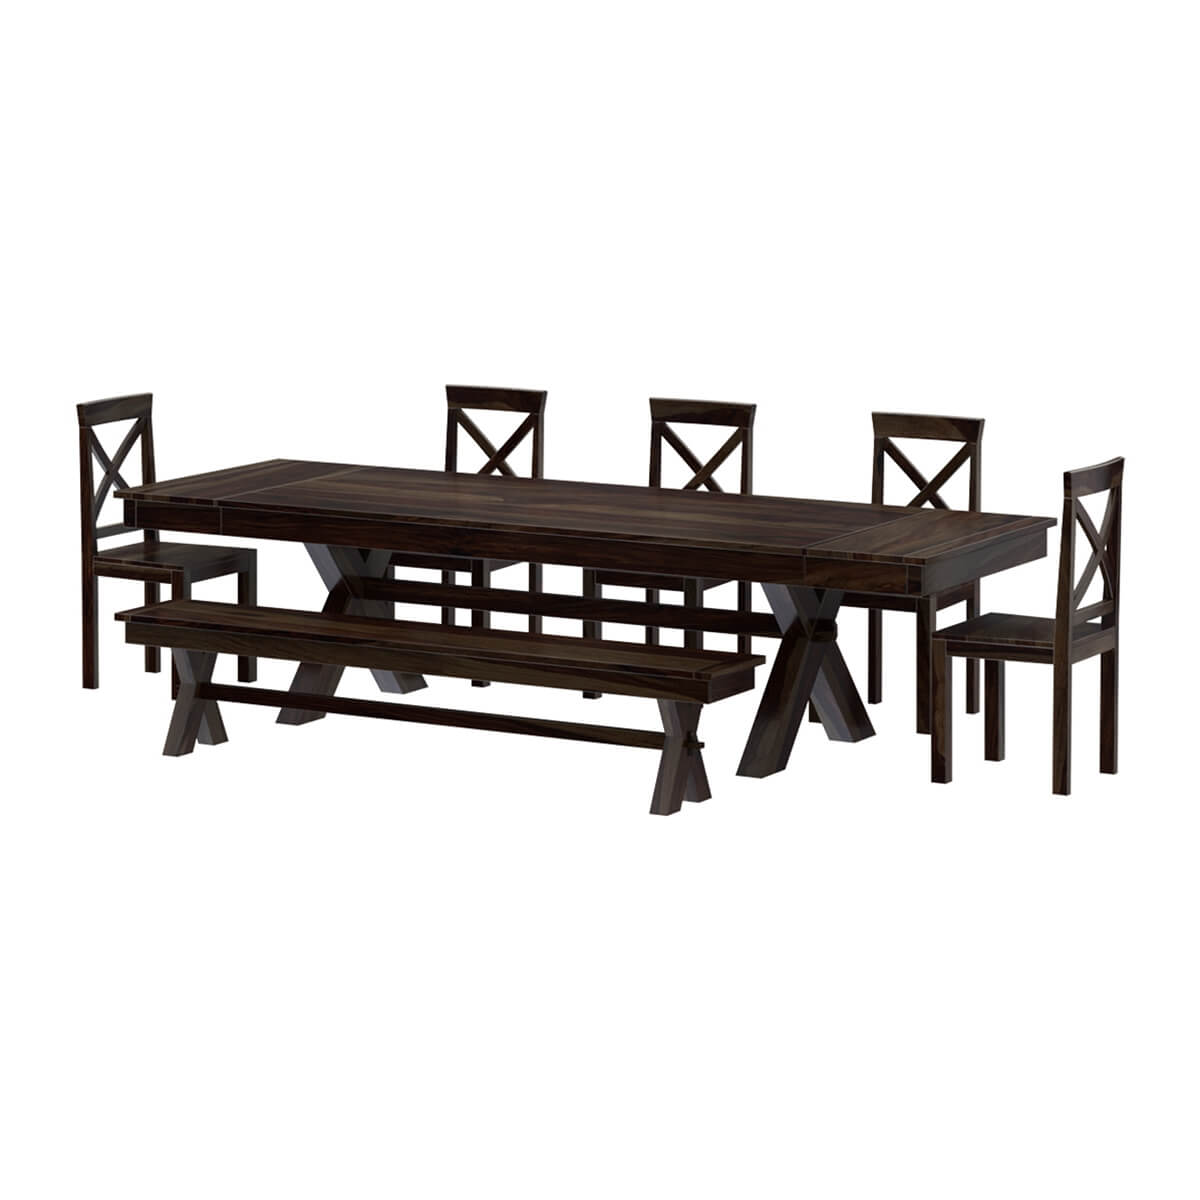 Picnic Table Dining Room Sets: Westside Indoor Picnic Style Extendable Dining Table Bench Set